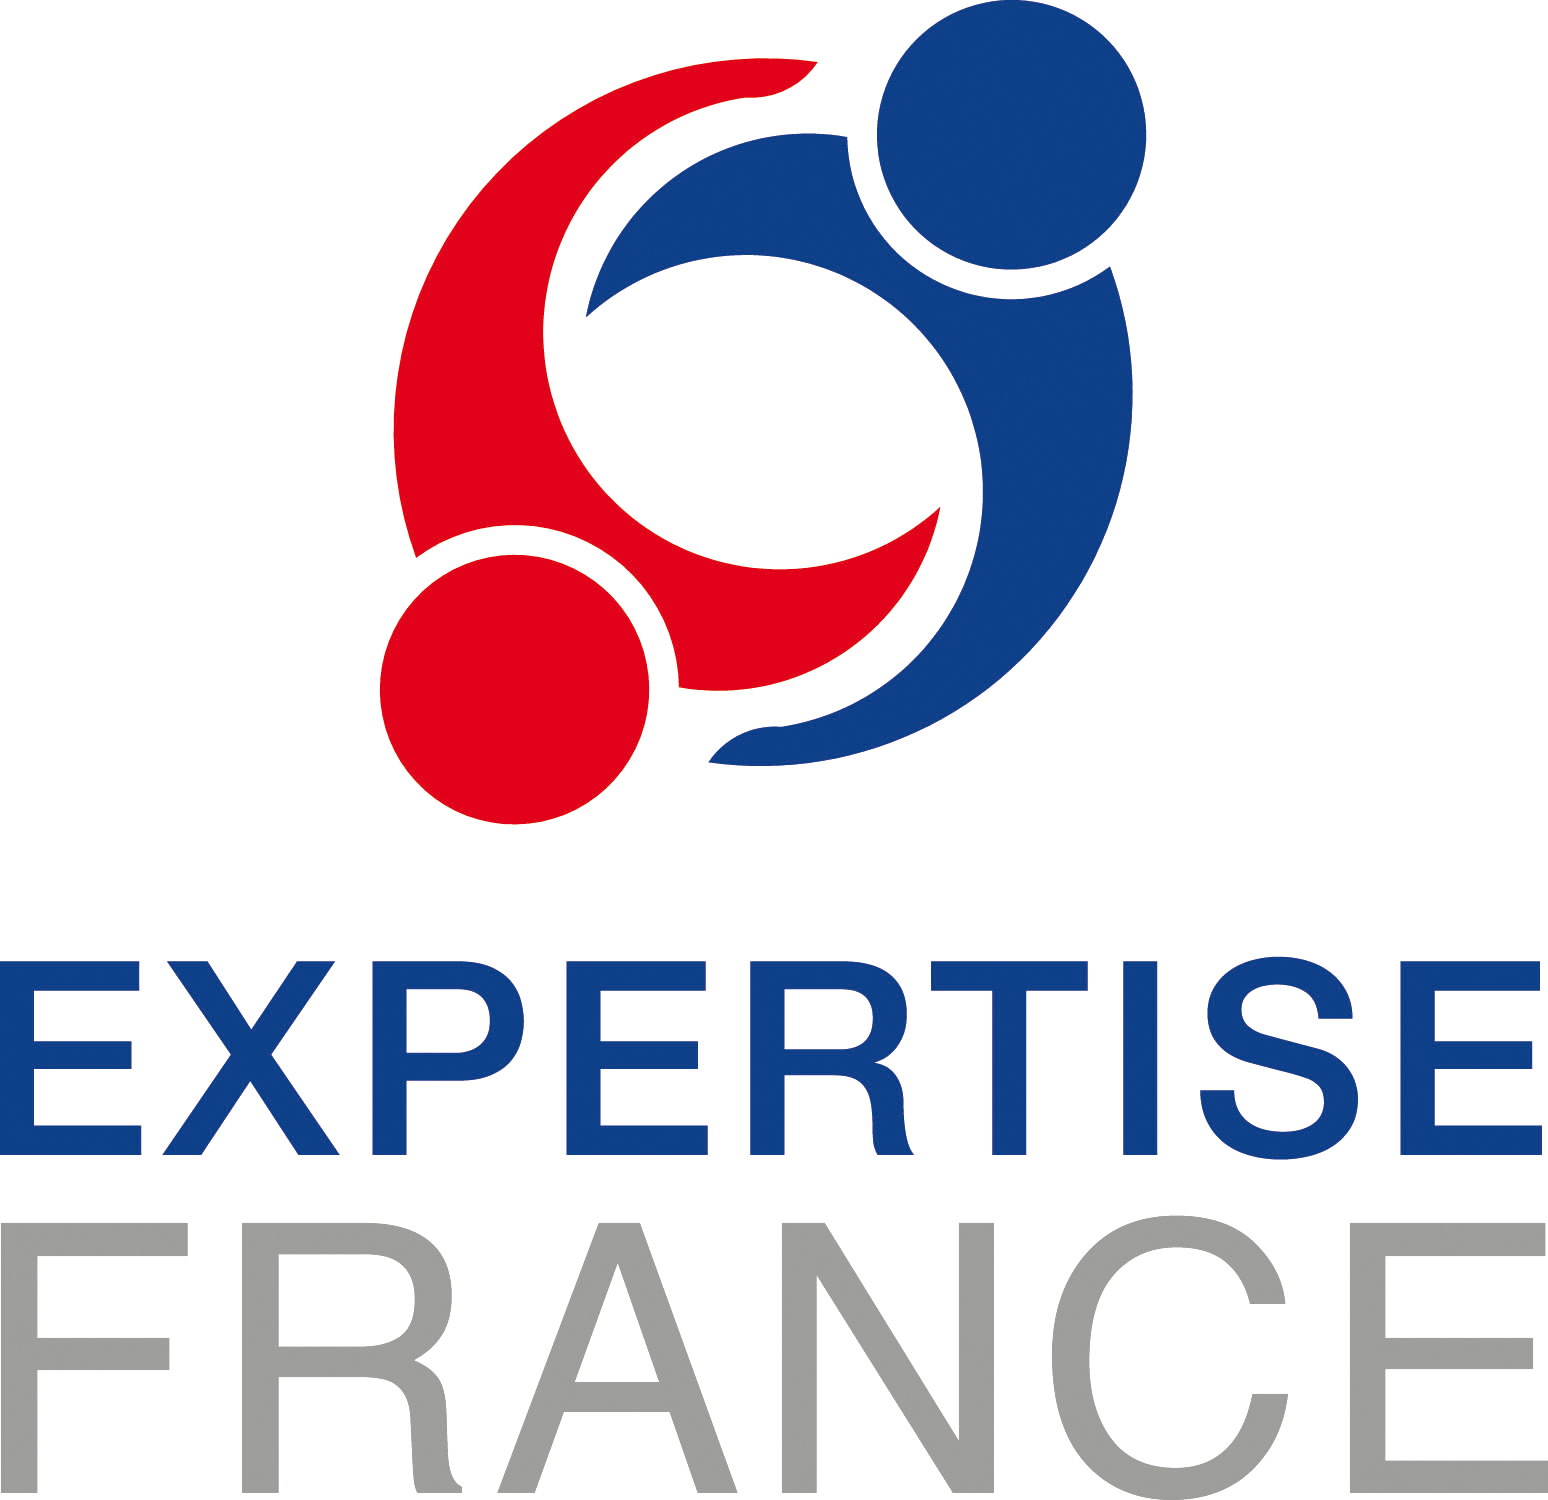 Expertise France logo